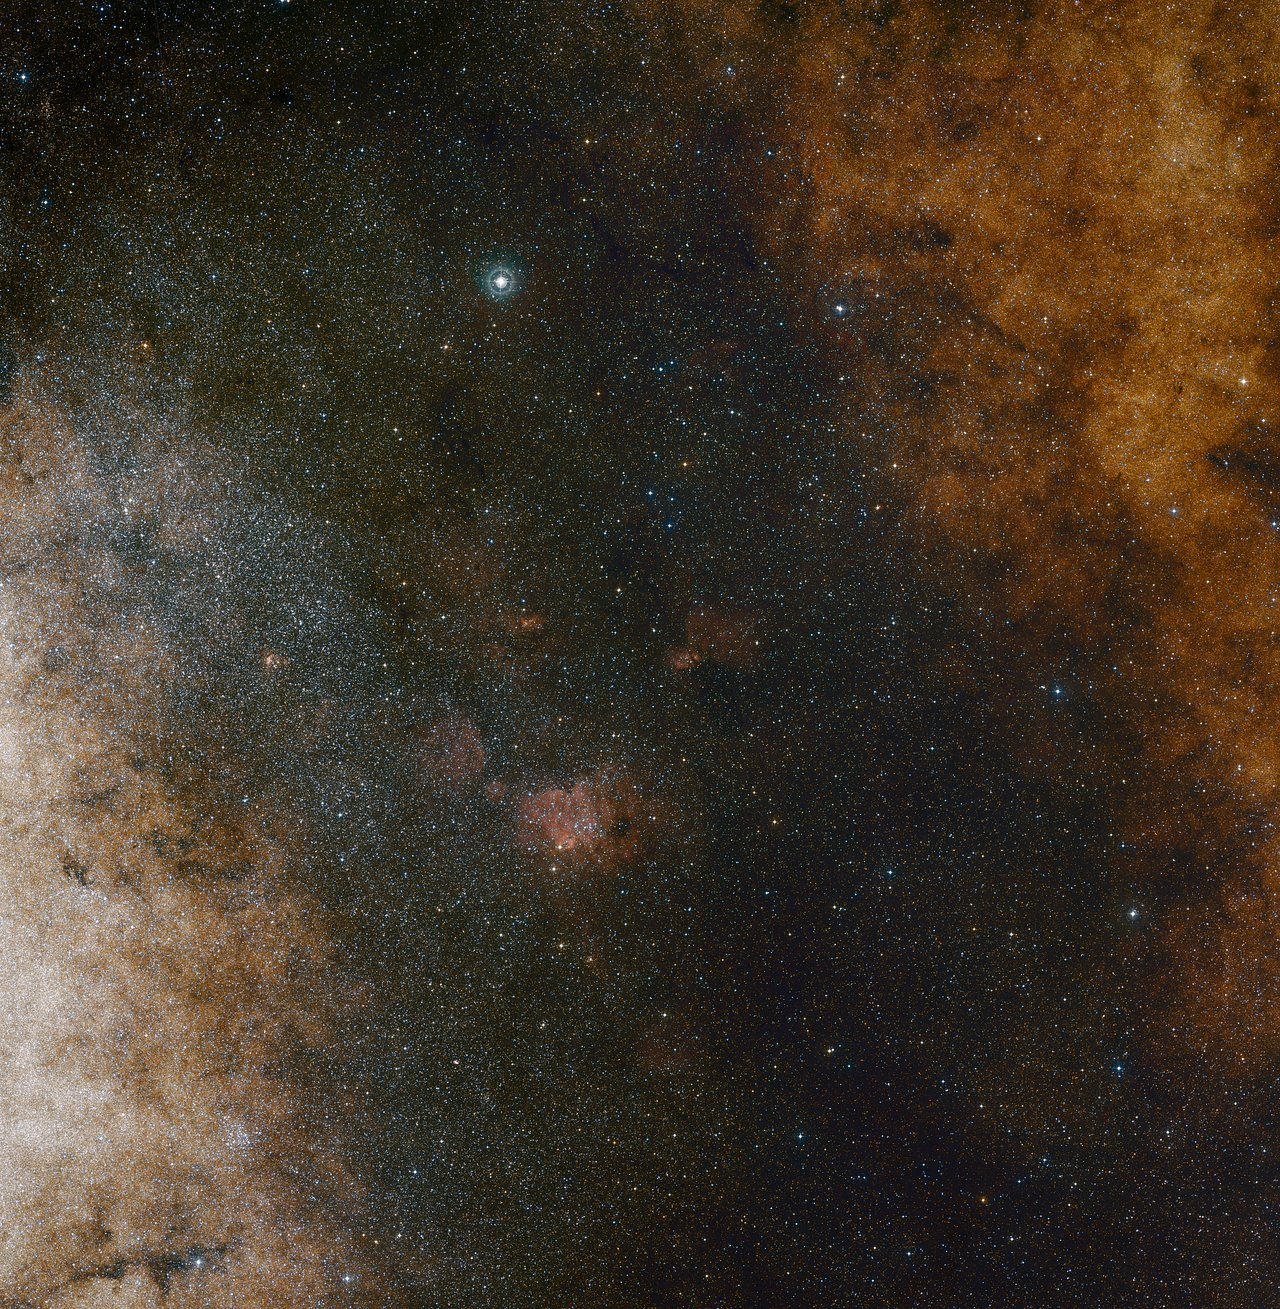 This visible light wide-field view shows the rich star clouds in the constellation of Sagittarius (the Archer) in the direction of the centre of our Milky Way galaxy. The entire image is filled with vast numbers of stars — but far more remain hidden behind clouds of dust and are only revealed in infrared images. This view was created from photographs in red and blue light and forming part of the Digitized Sky Survey 2. The field of view is approximately 3.5 degrees x 3.6 degrees. – Image Credit :  ESO and Digitized Sky Survey 2. Acknowledgment: Davide De Martin and S. Guisard